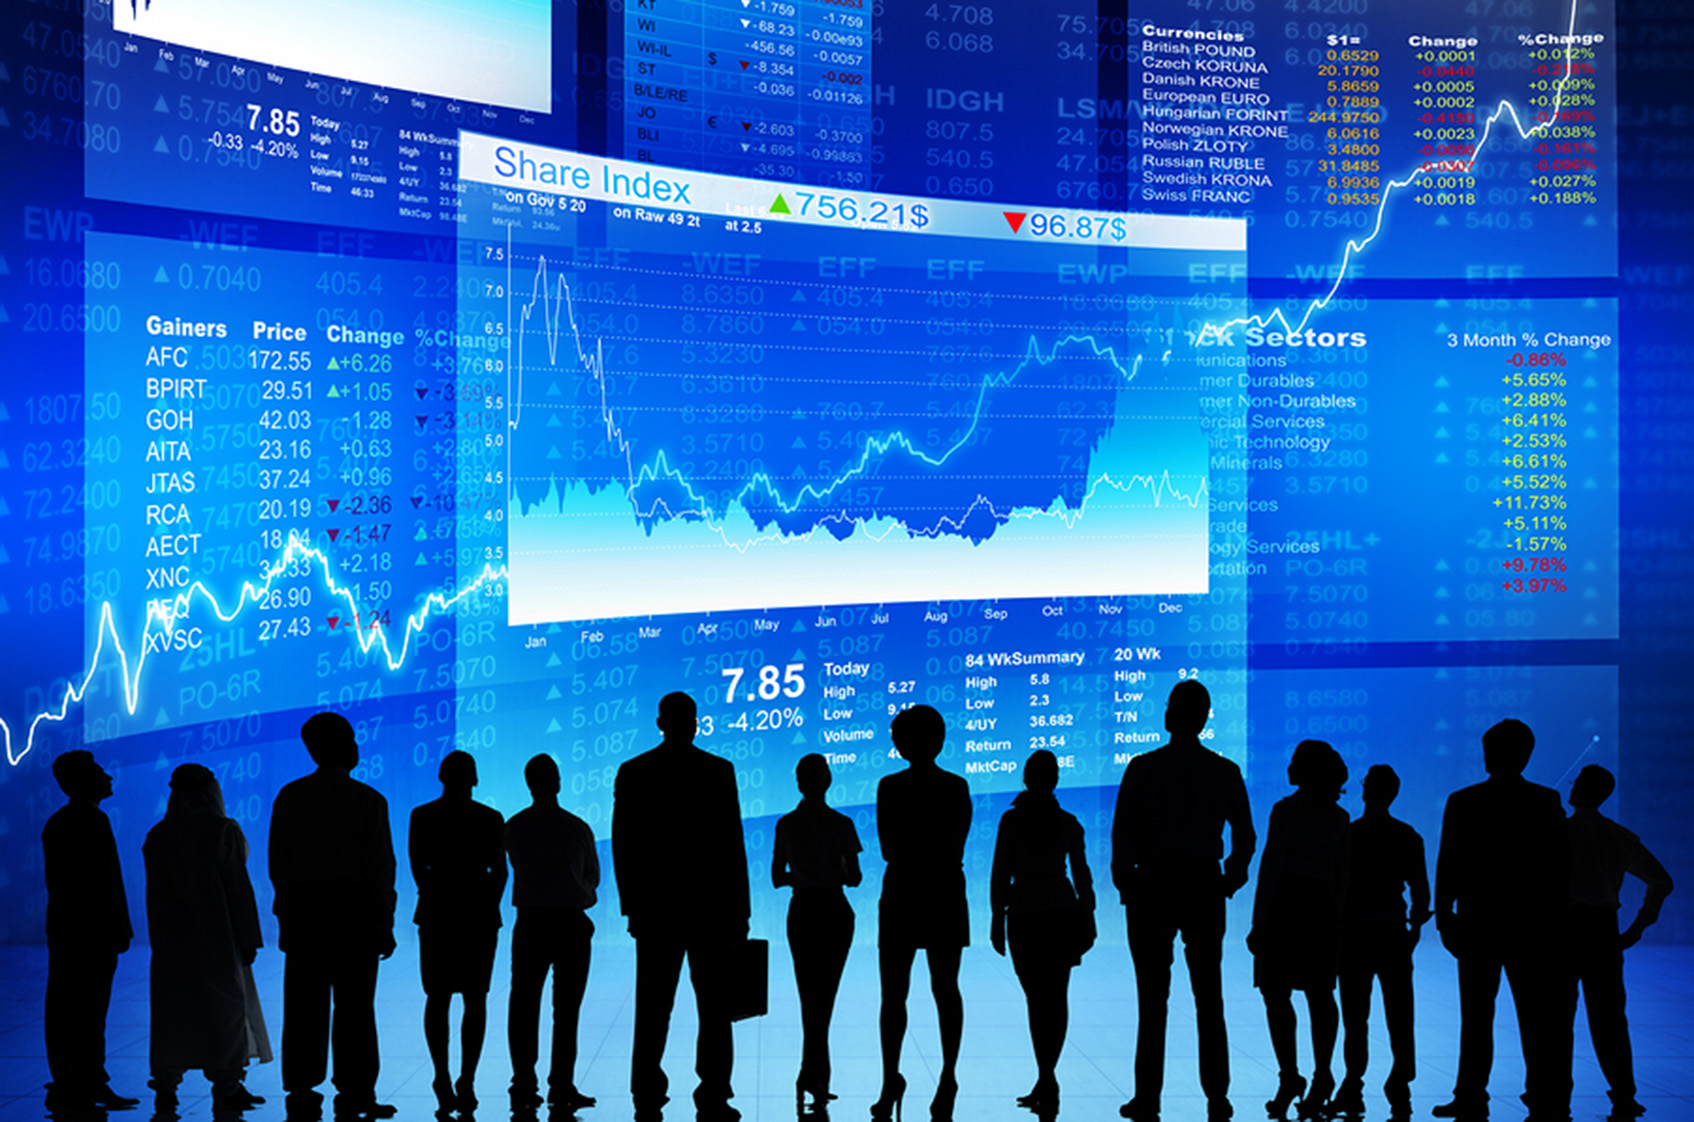 Martello Technologies Group: What's All the Fuss?